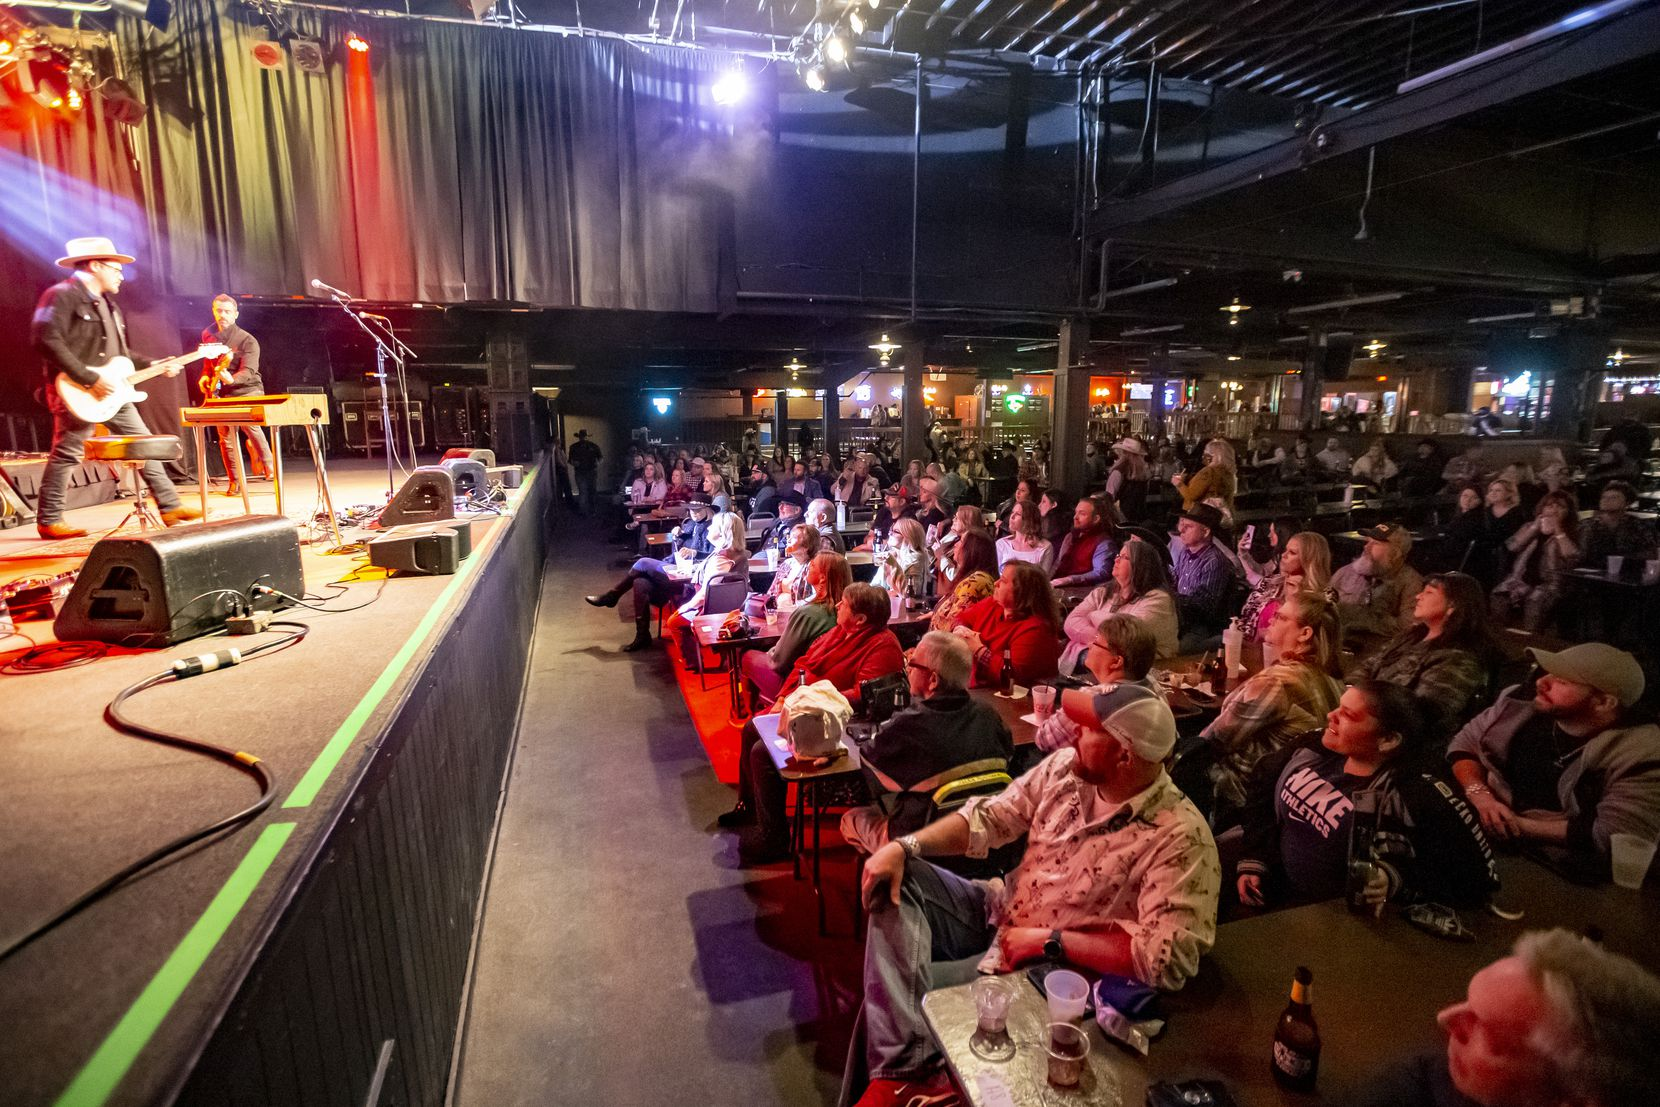 Concertgoers sat shoulder to shoulder, many without masks, during a Josh Weathers concert at Billy Bob's on Jan. 15. At the time, Billy Bob's required patrons to wear masks unless eating or drinking.